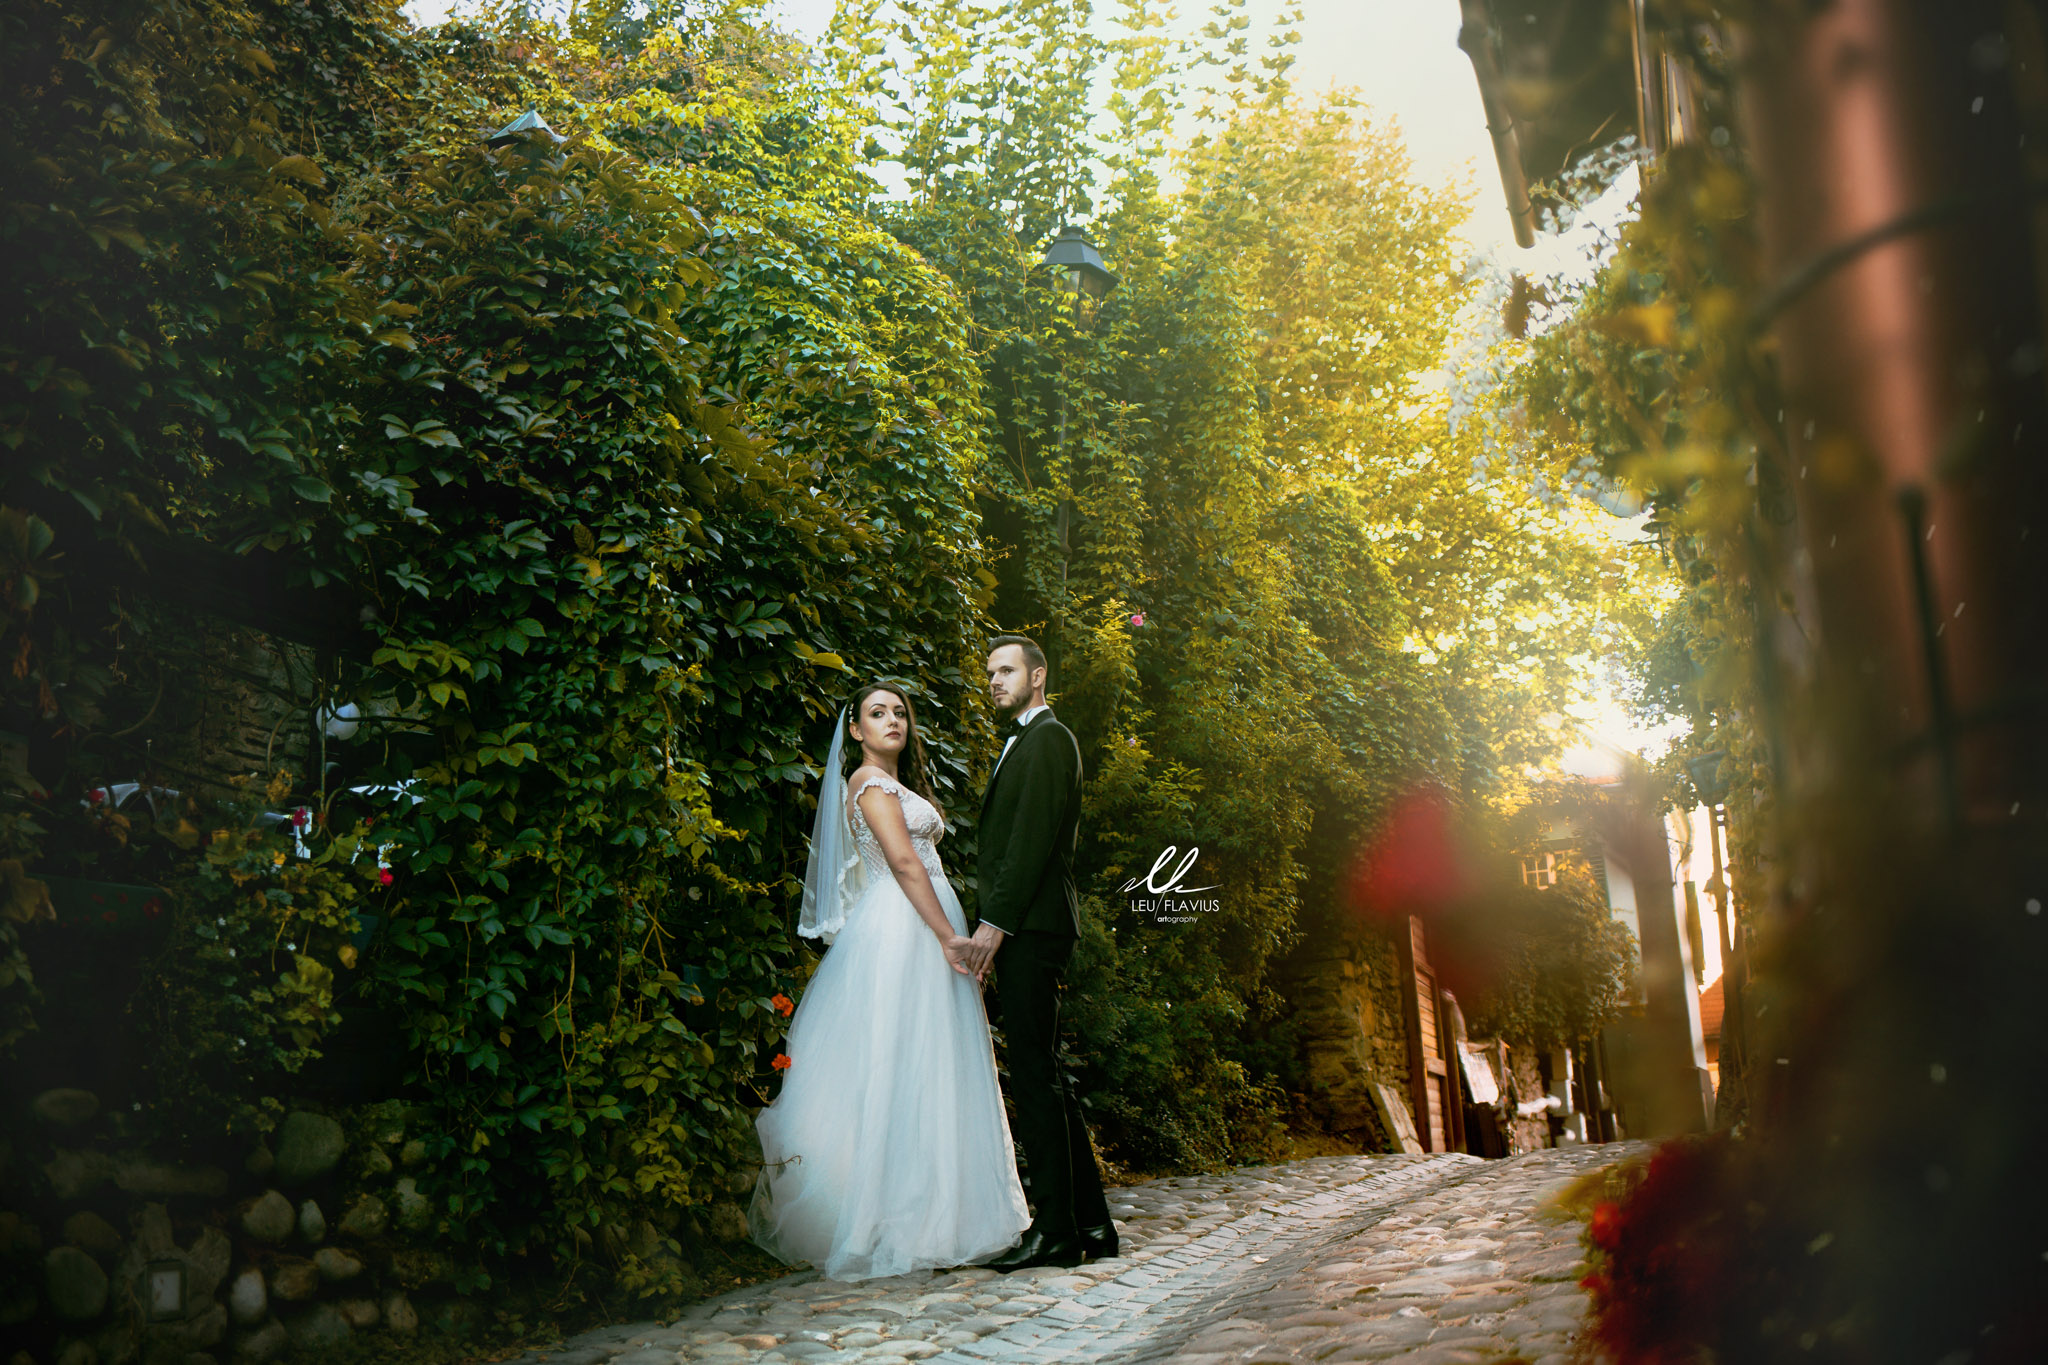 TRash the Dress 02 - Adriana si Cosmin Trash the Dress